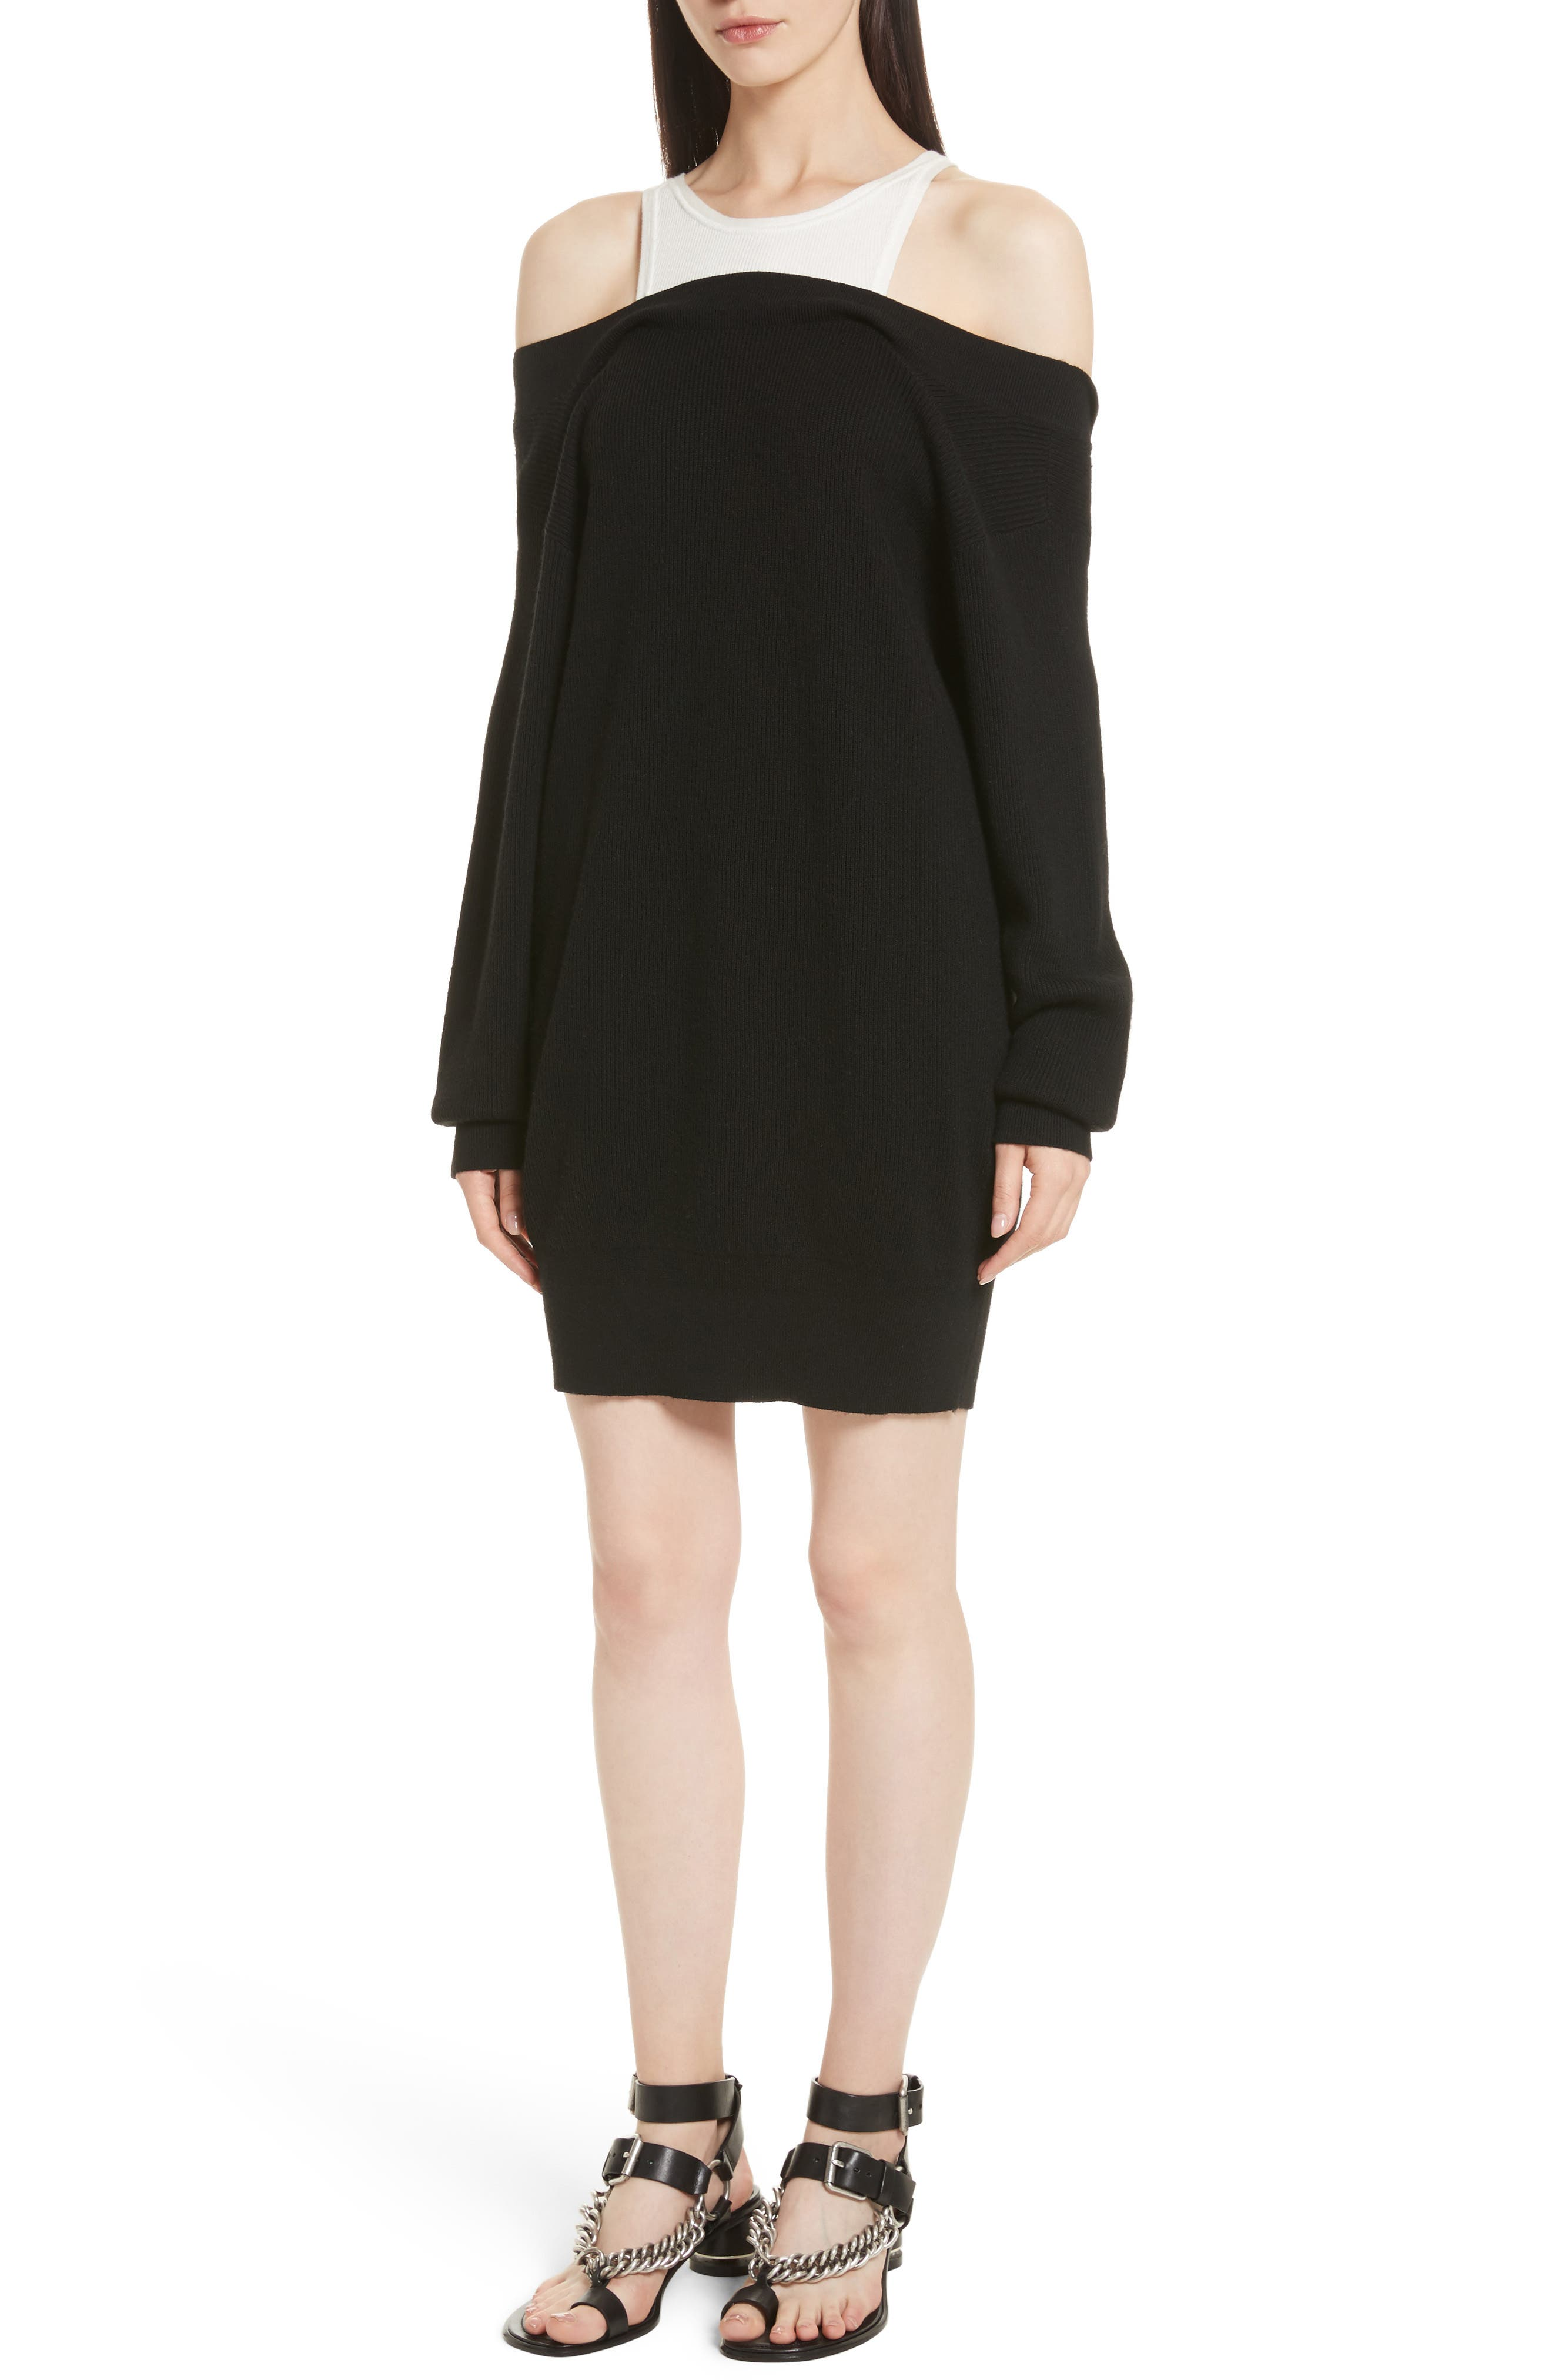 T by Alexander Wang Bi-Layer Knit Dress with Inner Tank